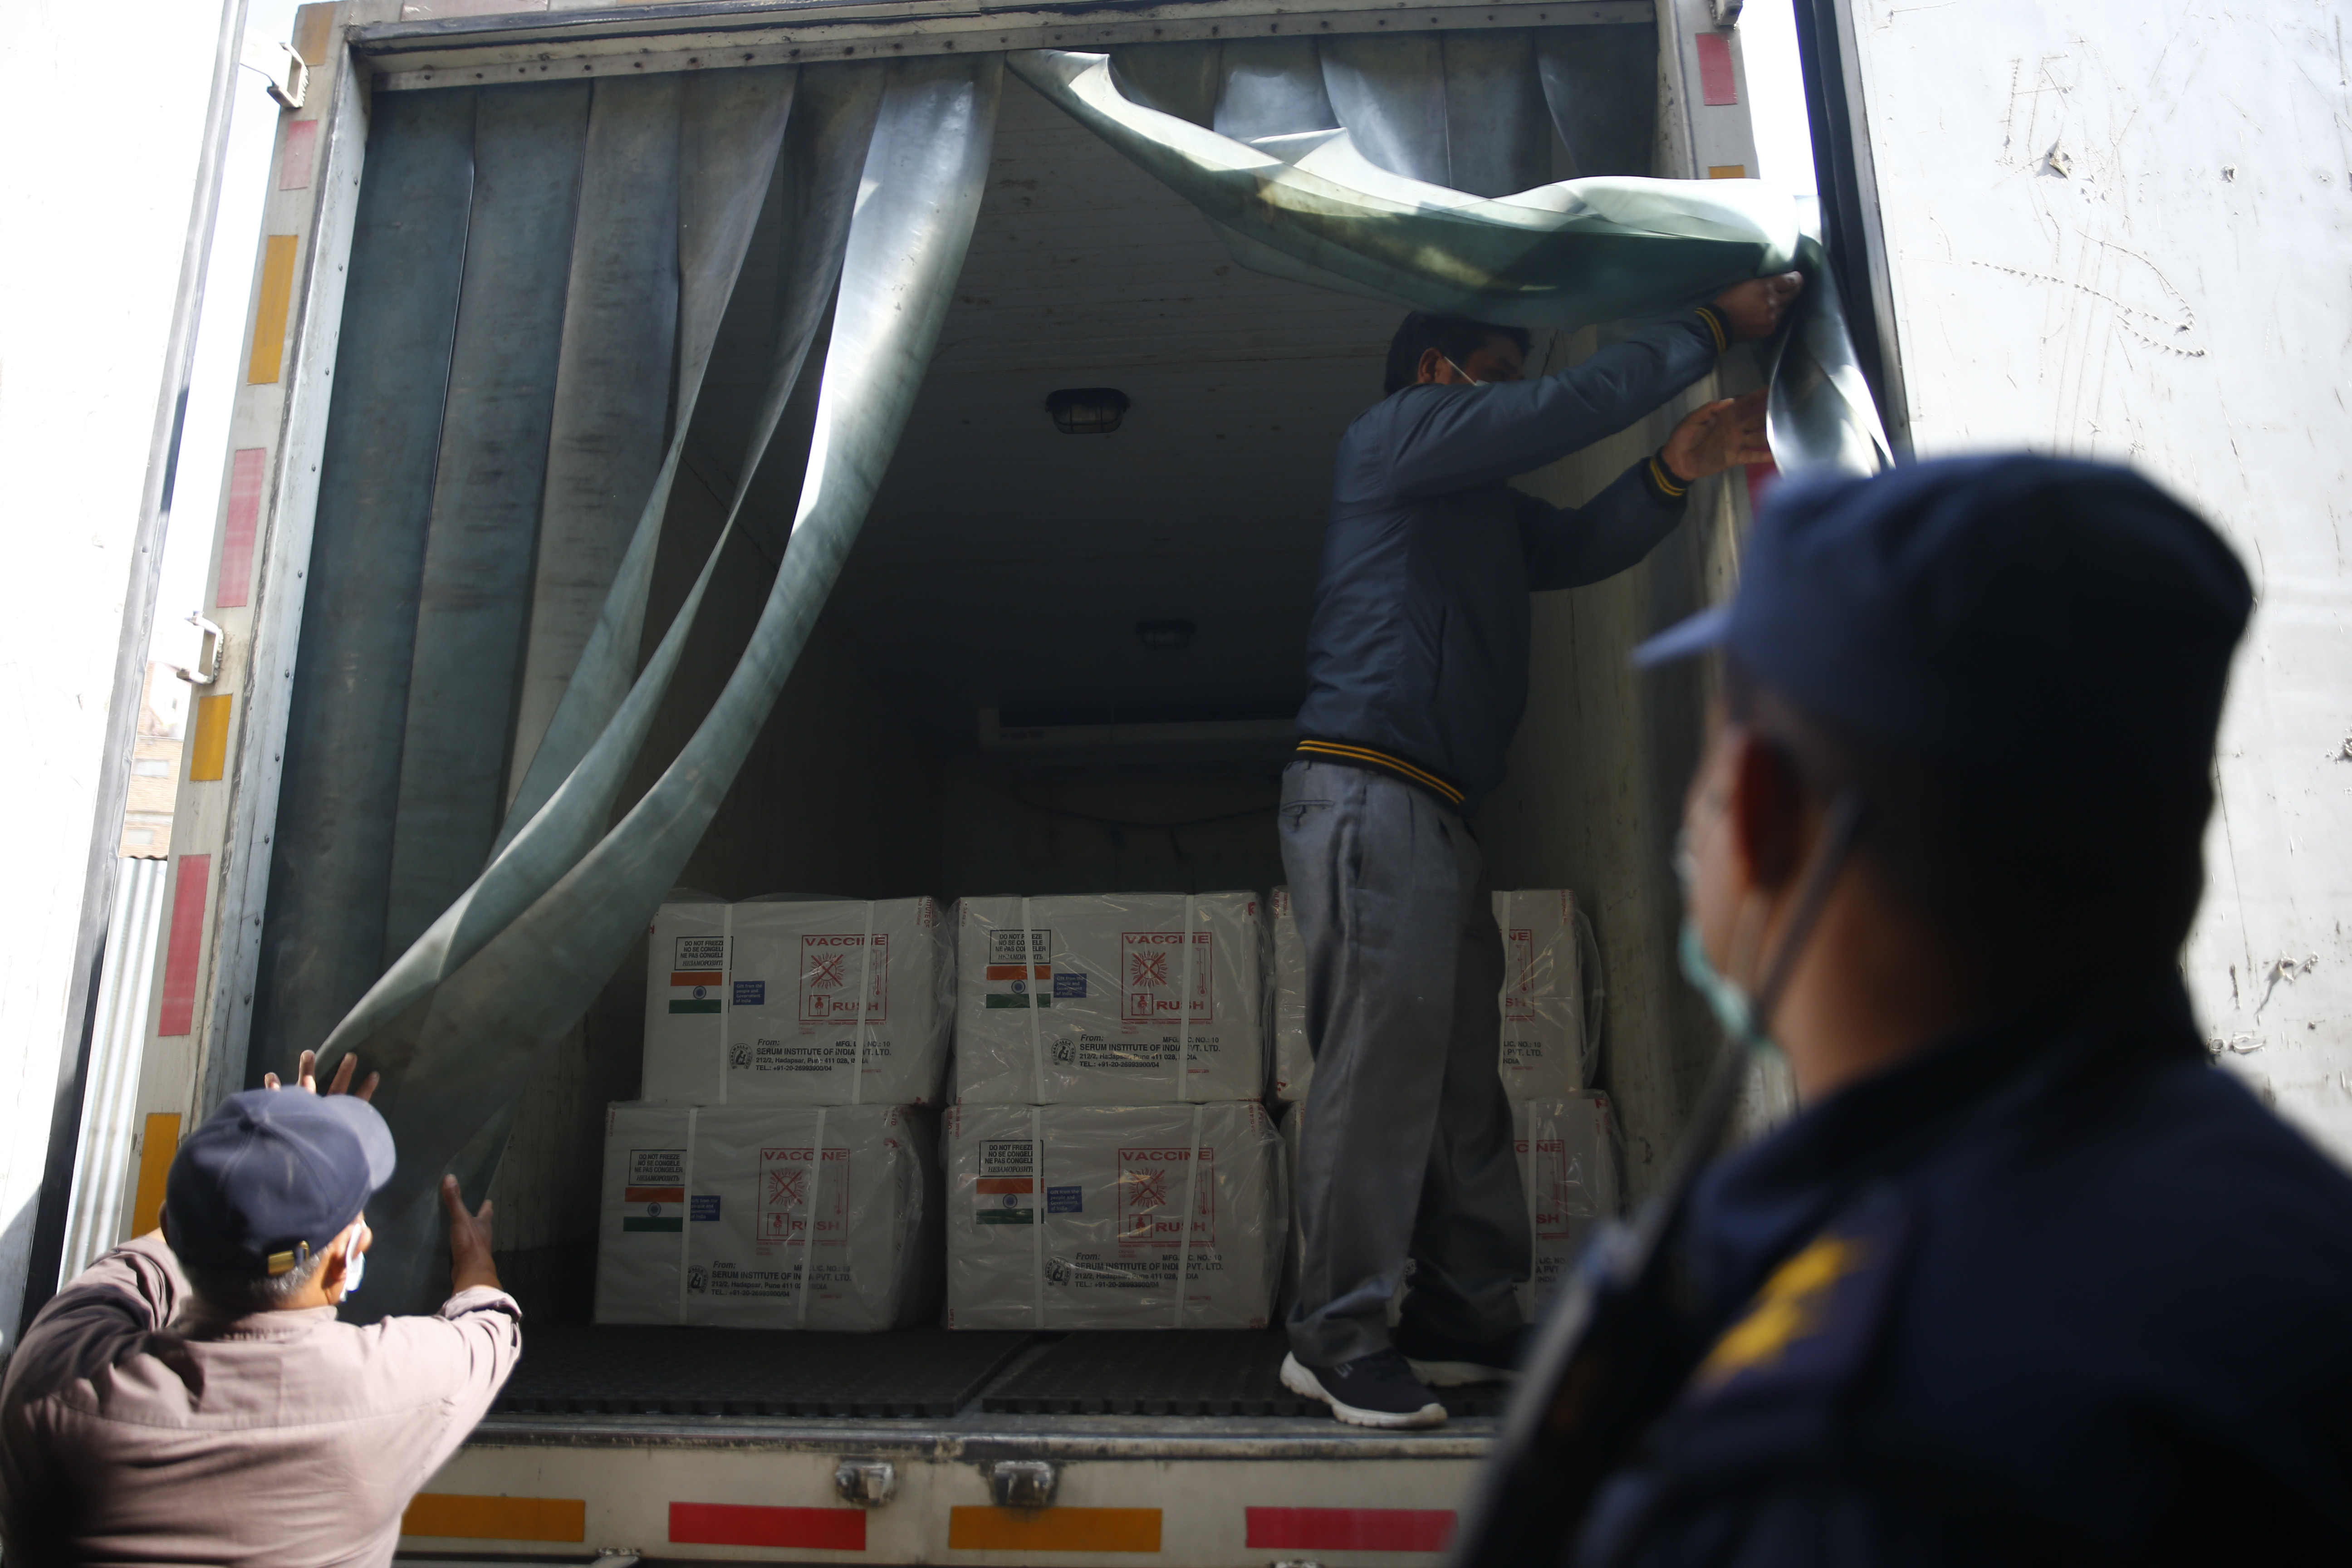 Hospital staffers unload Covid-19 vaccines that arrived from India at Department of Health Services, in Kathmandu, on Thursday, January 21, 2021. India under the u2018Vaccine Maitri' initiative is providing 1 million doses the vaccine, in aid, to Nepal to fight against the coronavirus. n Photo: Skanda Gautam/THT